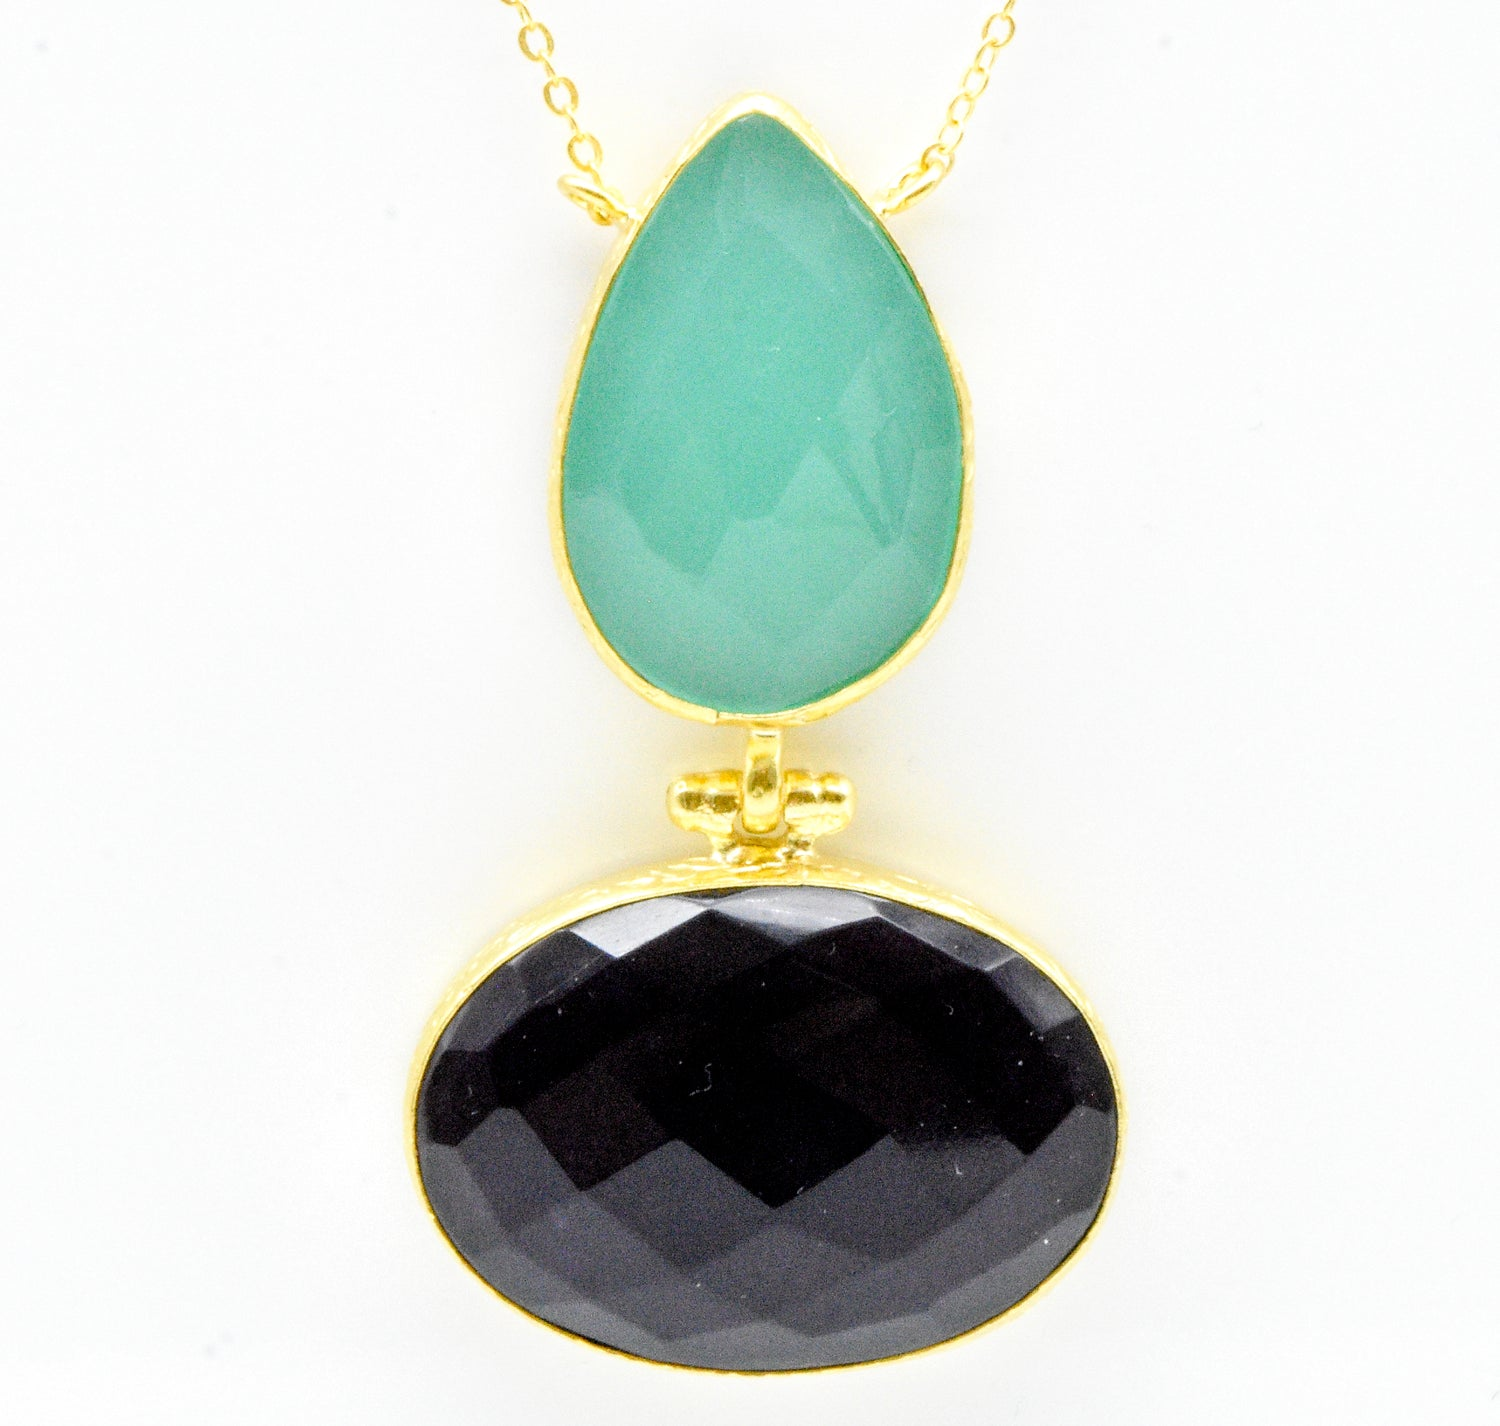 Aylas ottoman gold plated gem stone necklace pendant Chalcedony Amethyst - Ottoman Handmade Jewellery Hand Made Gold Plated